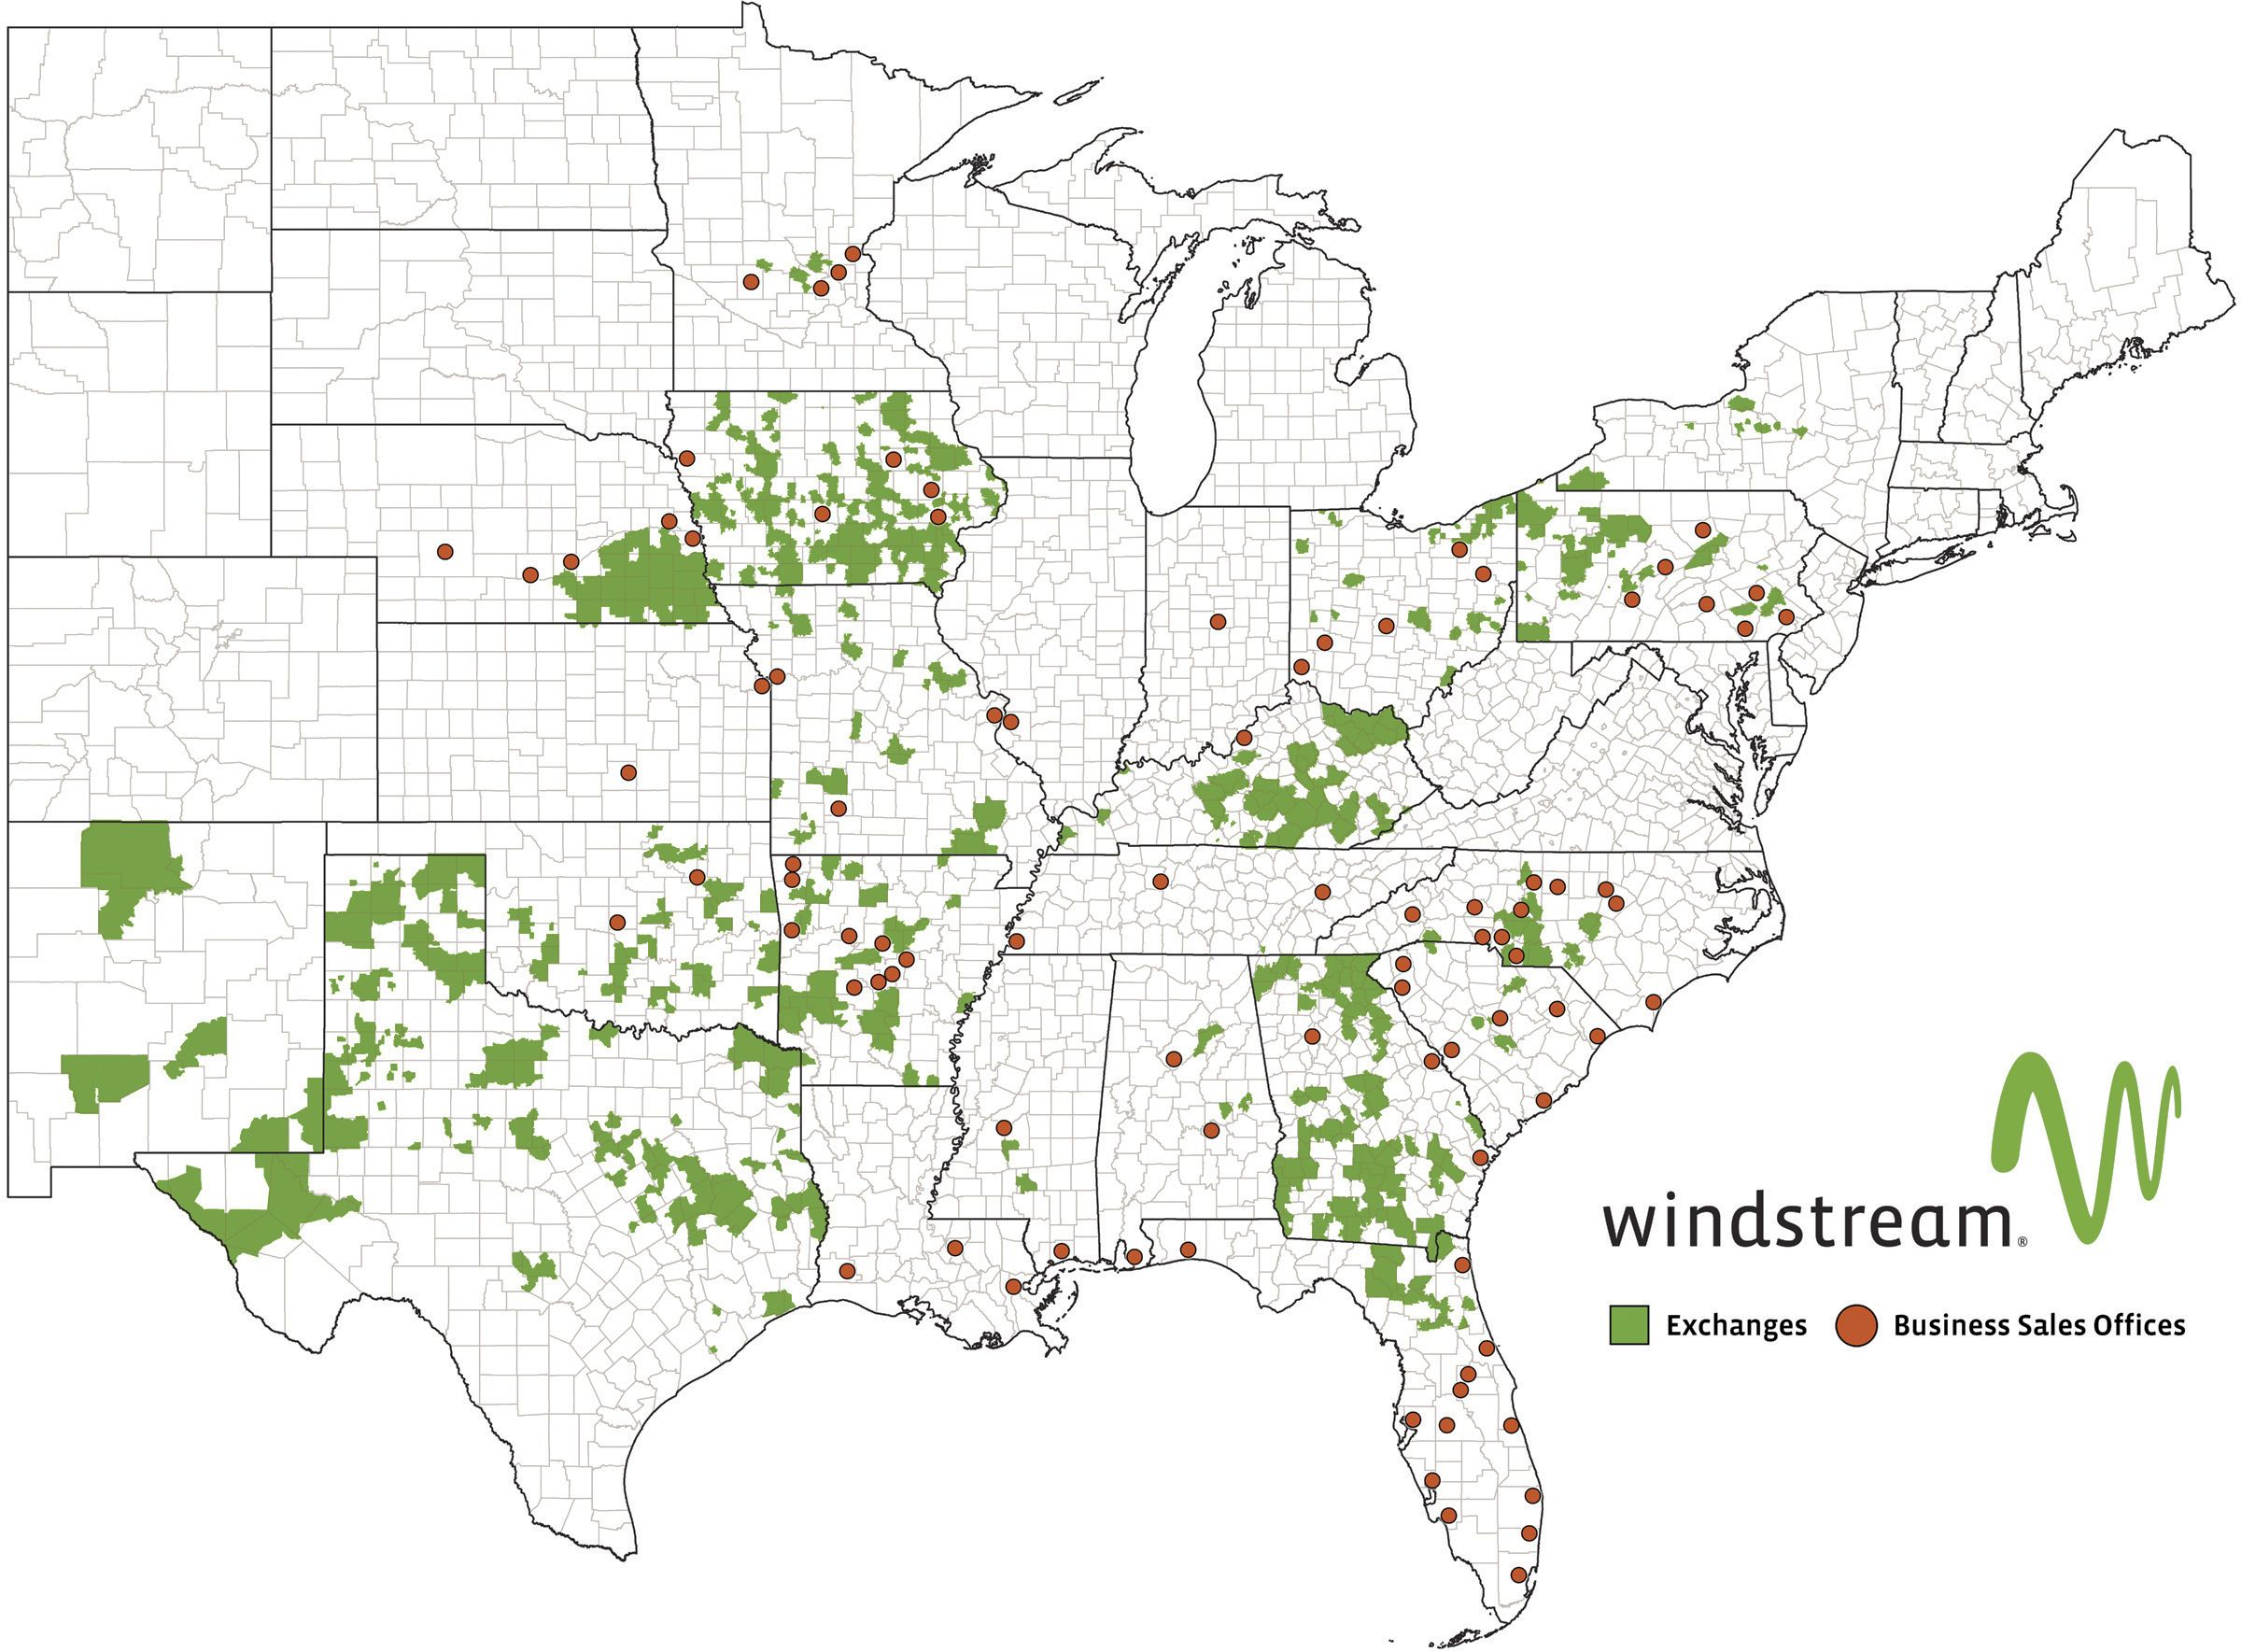 5 Struggles Everyone With Windstream Understands Odyssey